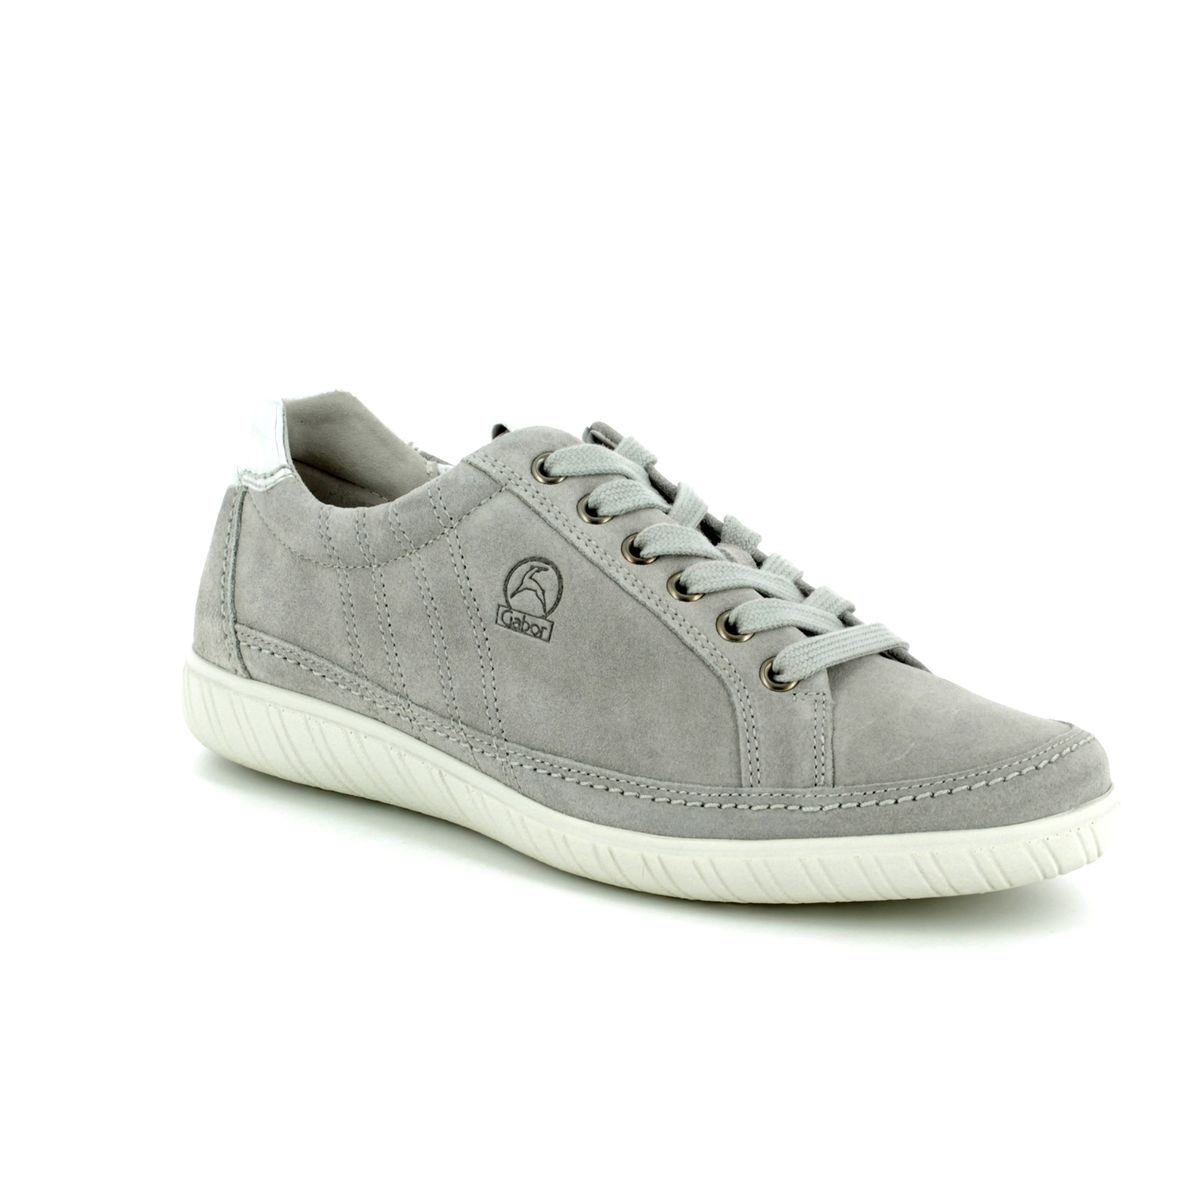 76dafce4a15e1 Gabor Trainers - LIGHT GREY SUEDE - 86.458.40 AMULET